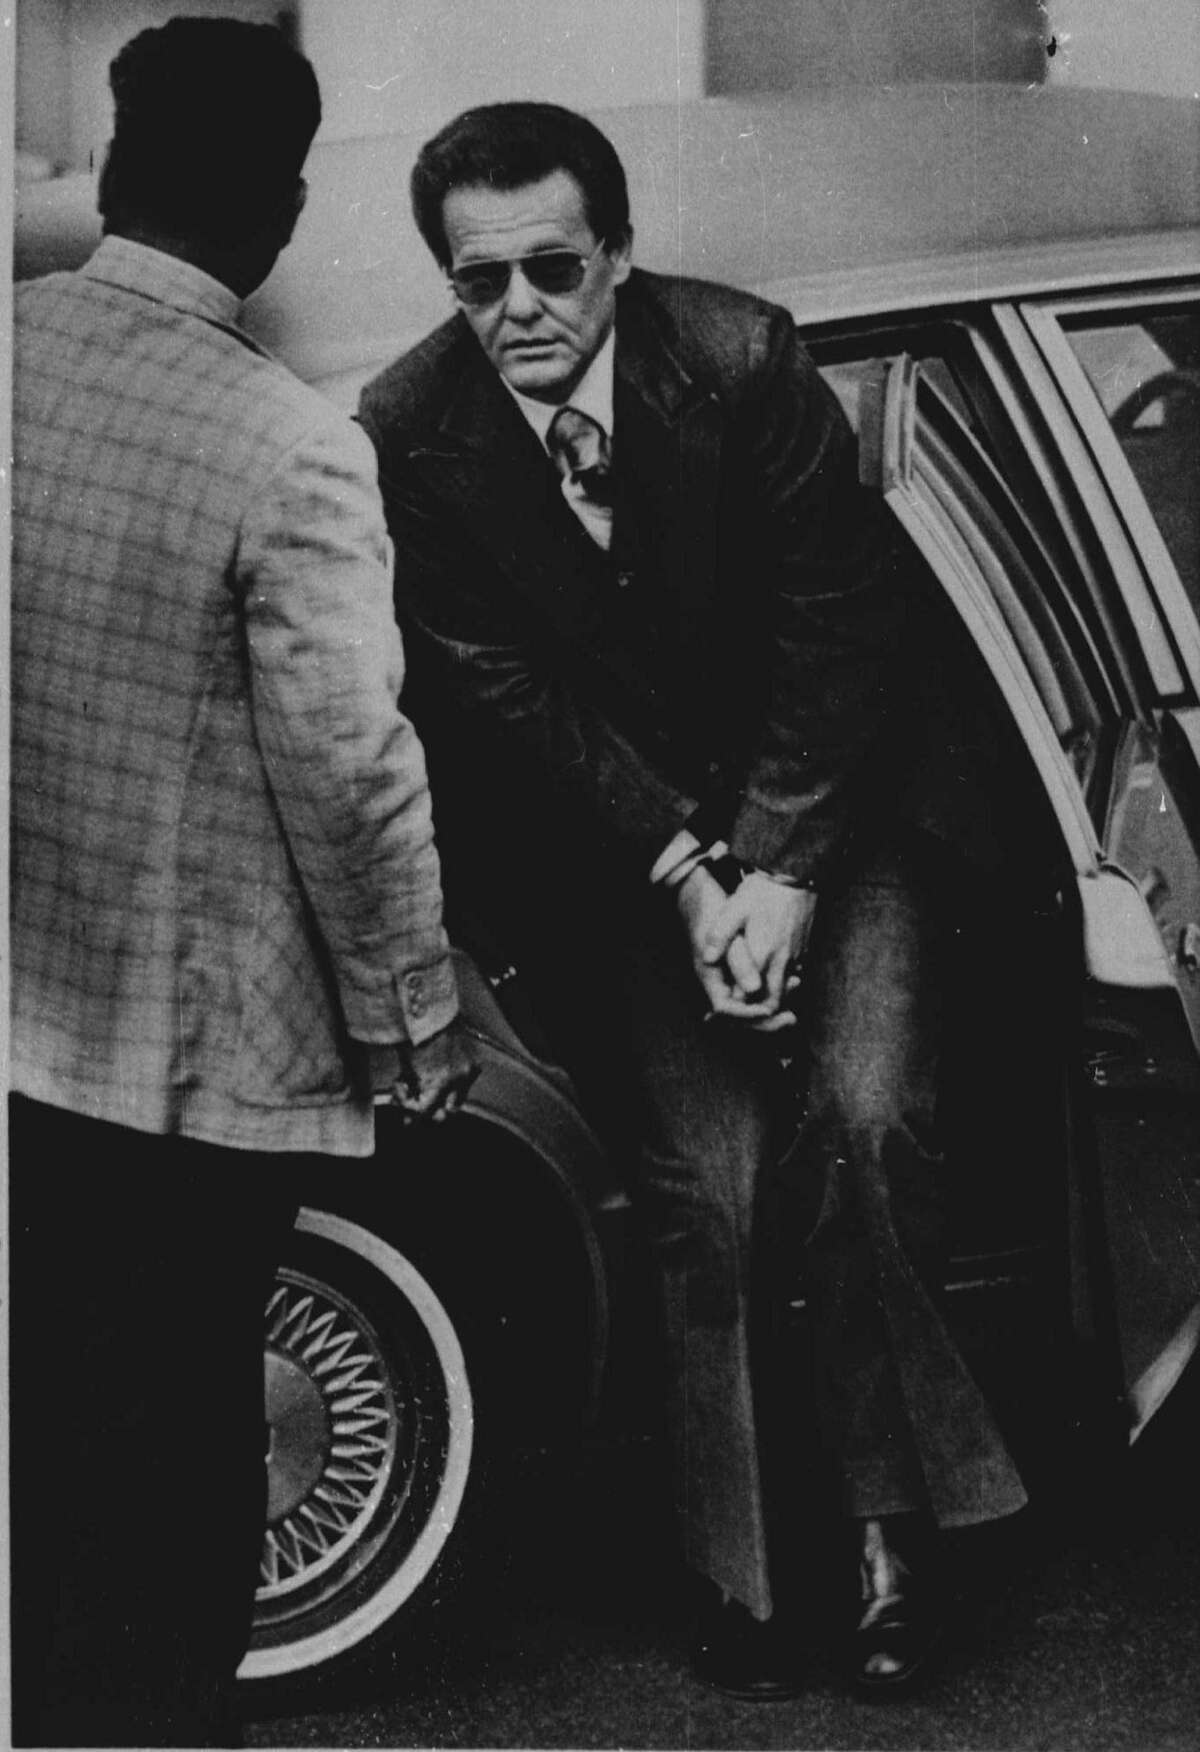 Charles Harrelson, arrives at the U.S. Courthouse in San Antonio, Texas, Tuesday morning, September 28, 1982, to begin the trial for the May 1979 murder of Federal Judge John H. Wood, Jr.( AP PHOTO/ STEVE KRAUSS)